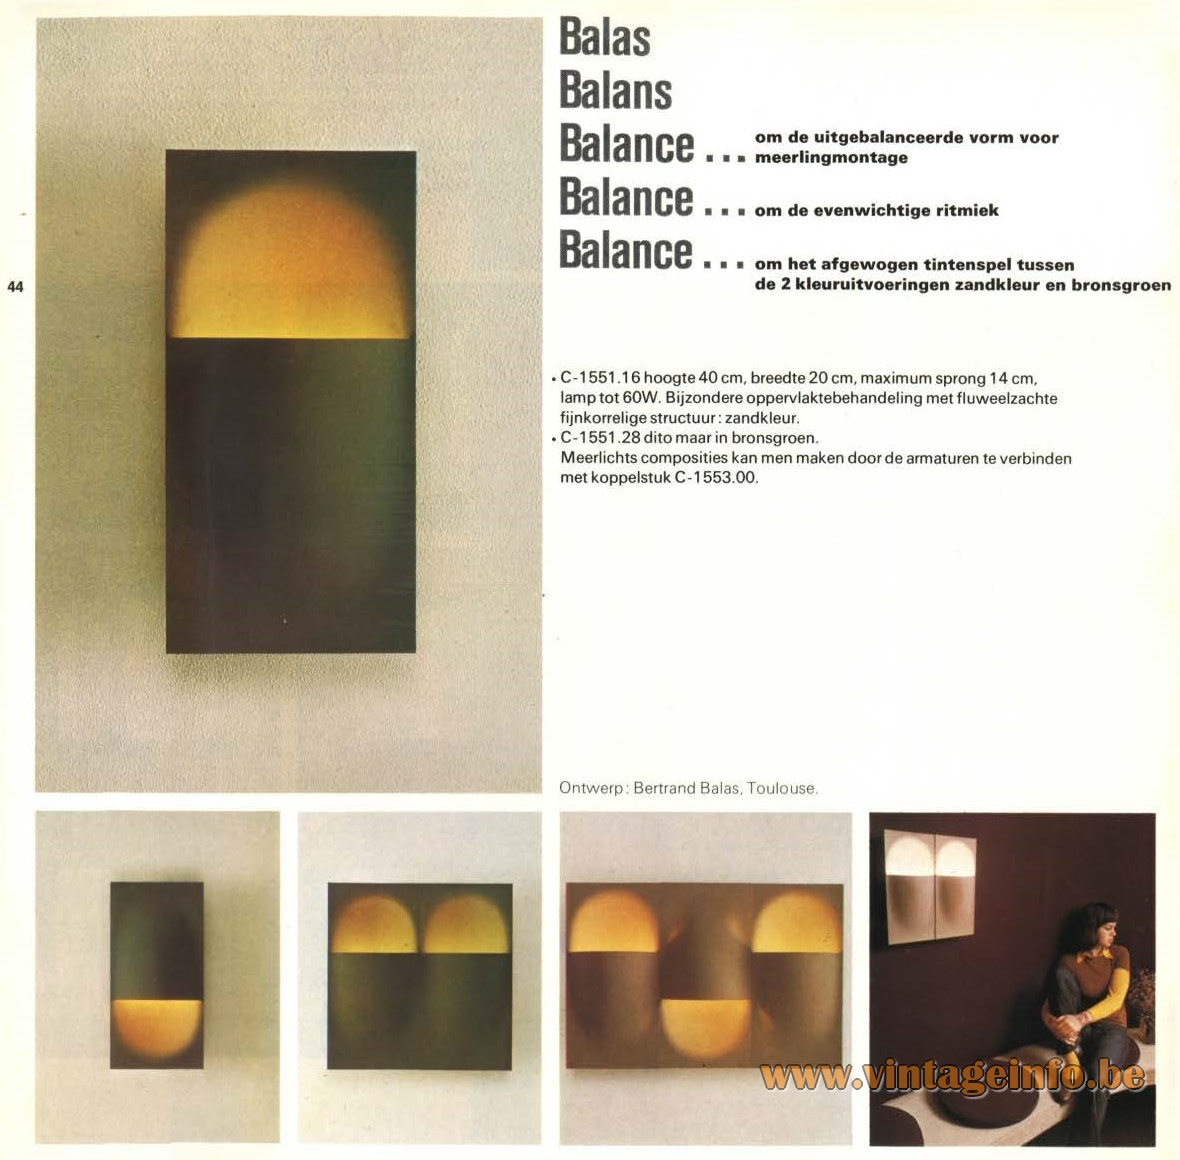 Raak Amsterdam Light Catalogue 9, 1972 - Raak Balas, Balans, Balance Wall Lamp – C-1551